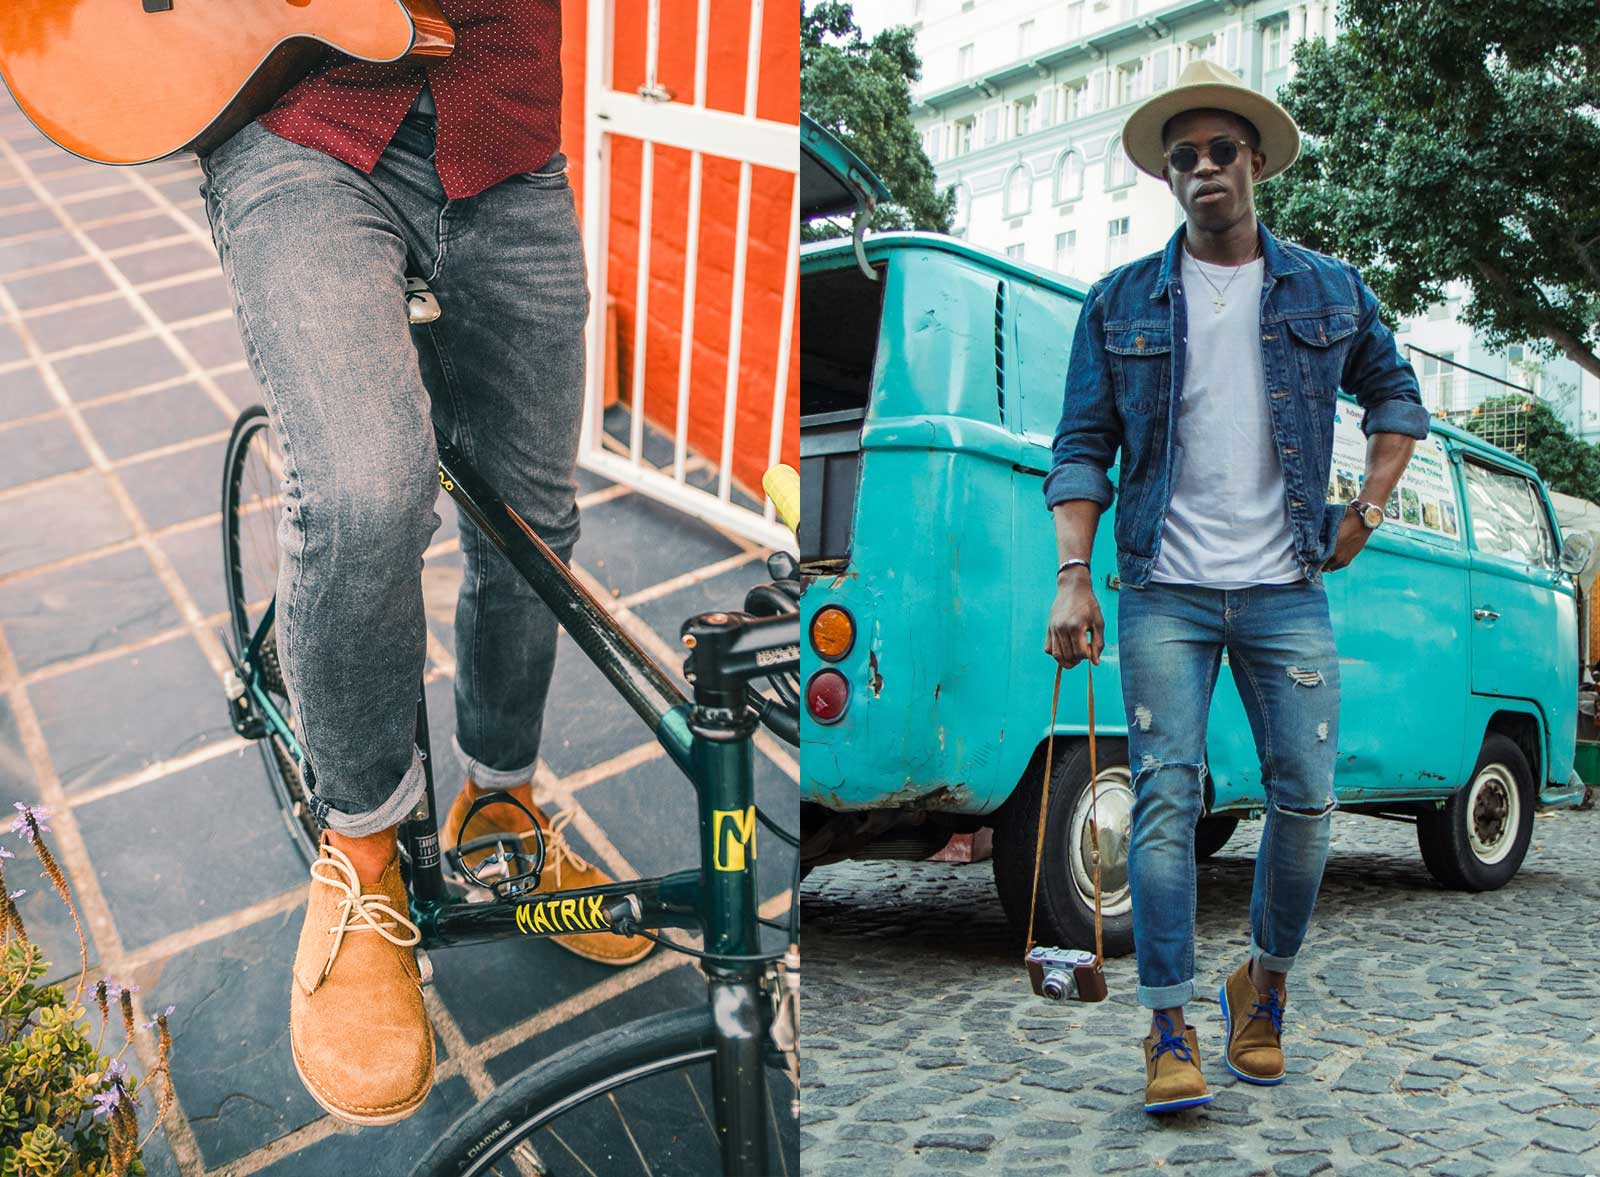 Two men wearing Veldskoen shoes ethically handcrafted genuine leather boots and shoes from South Africa heritage mens veldskoene original suede chukkas wearing jeans and riding bike with blue vw bus in back ground